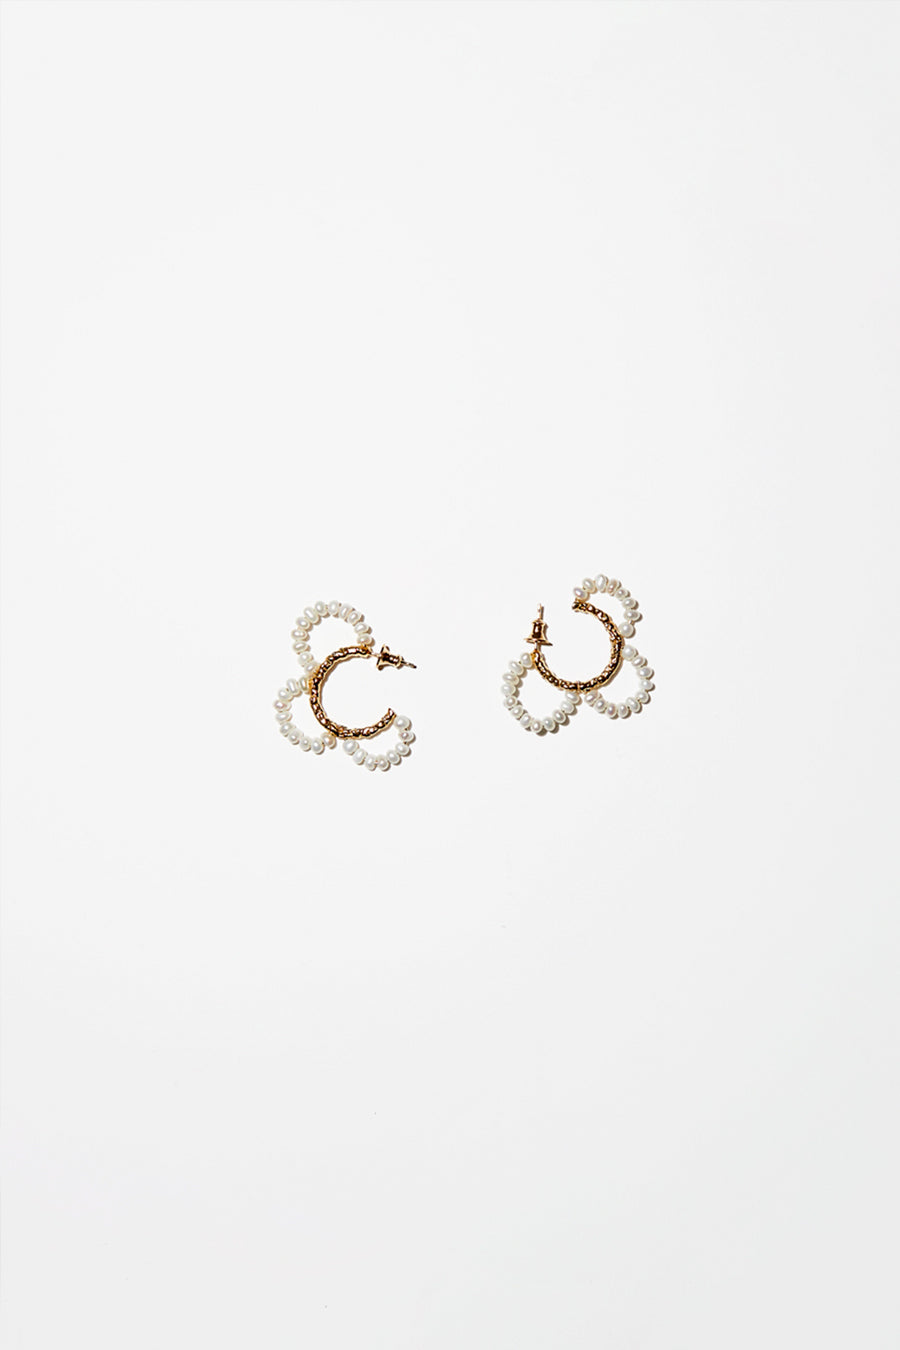 Mirit Weinstock Pearls Petals Hoops in Gold Plate